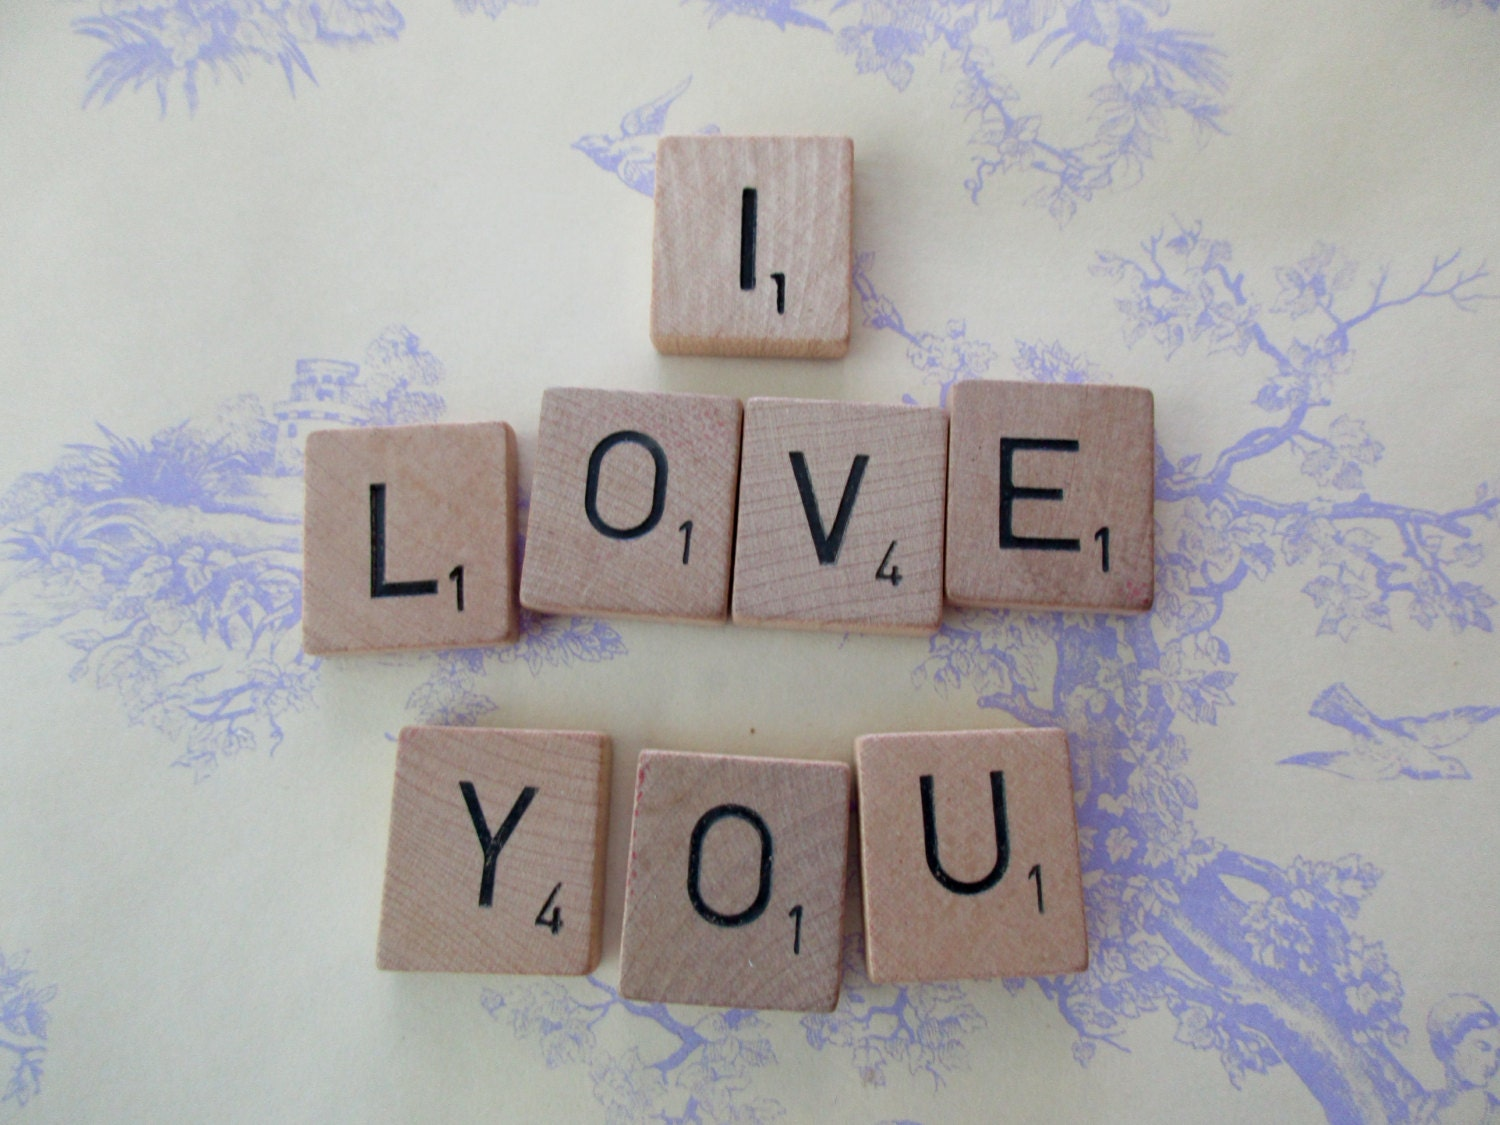 Vintage scrabble tiles 8 tiles i love you words letters sold by junquedujour dailygadgetfo Image collections